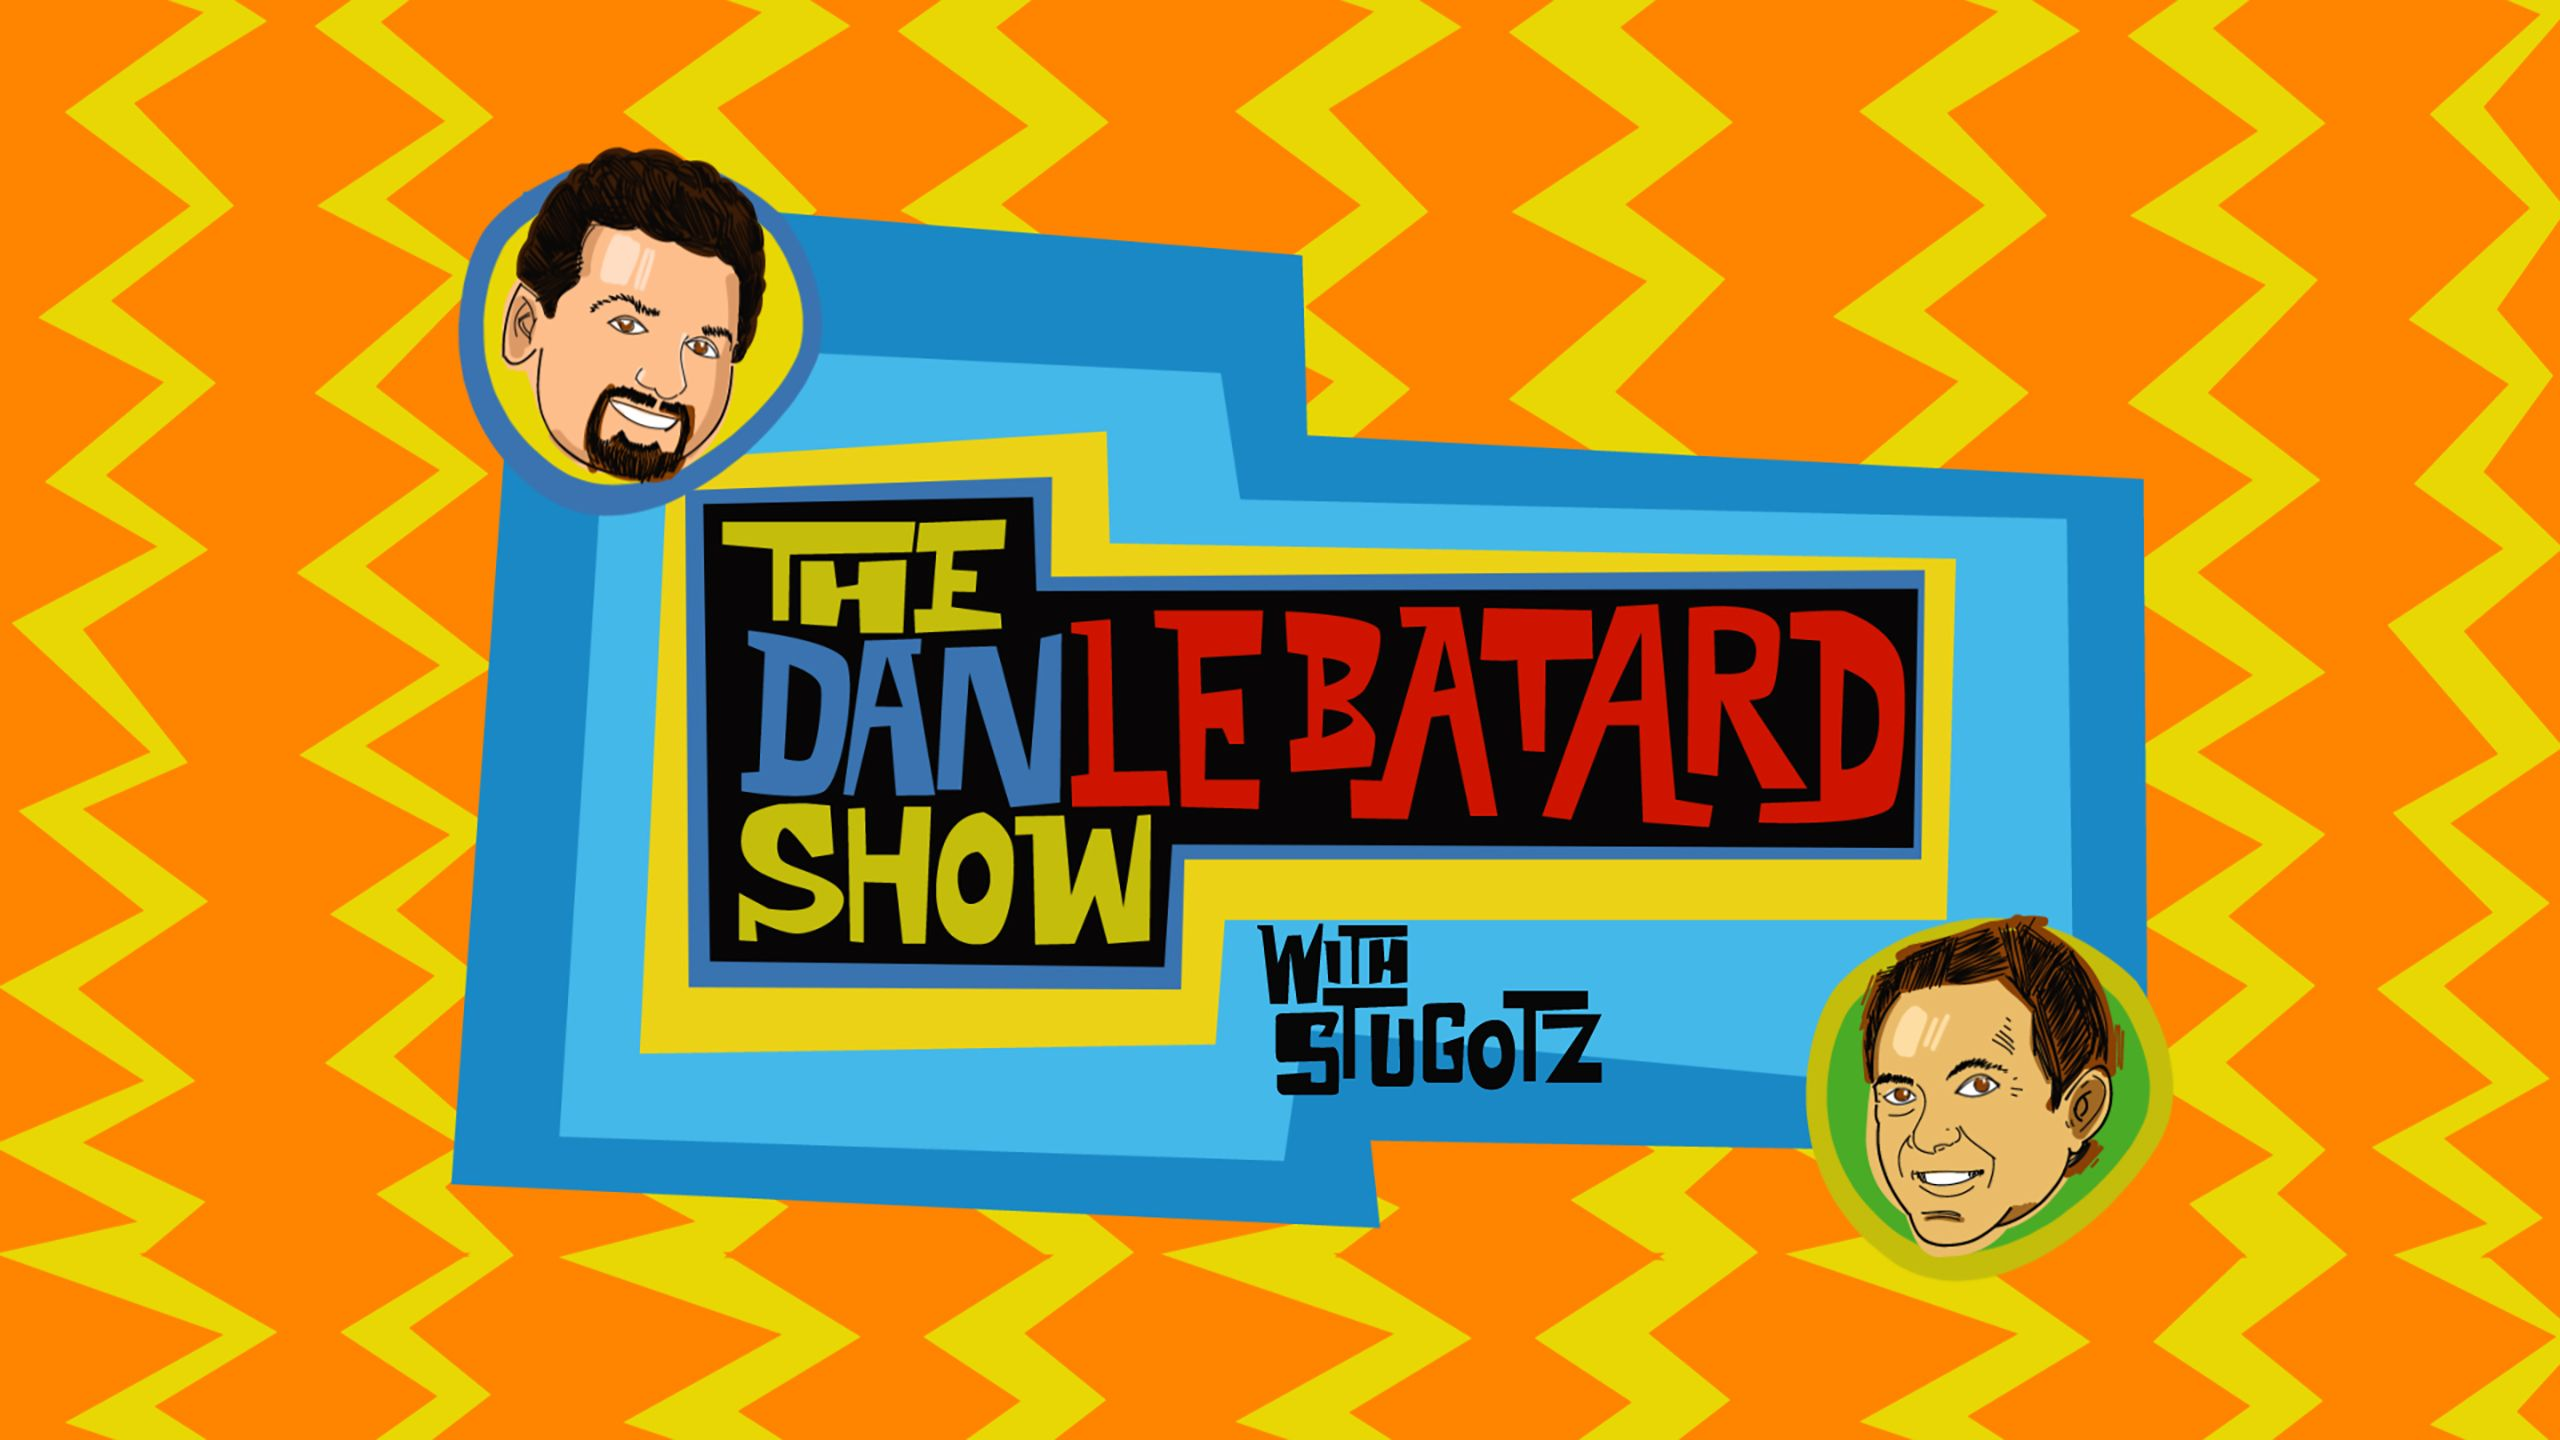 Thu, 2/22 - The Dan Le Batard Show with Stugotz Presented by Progressive